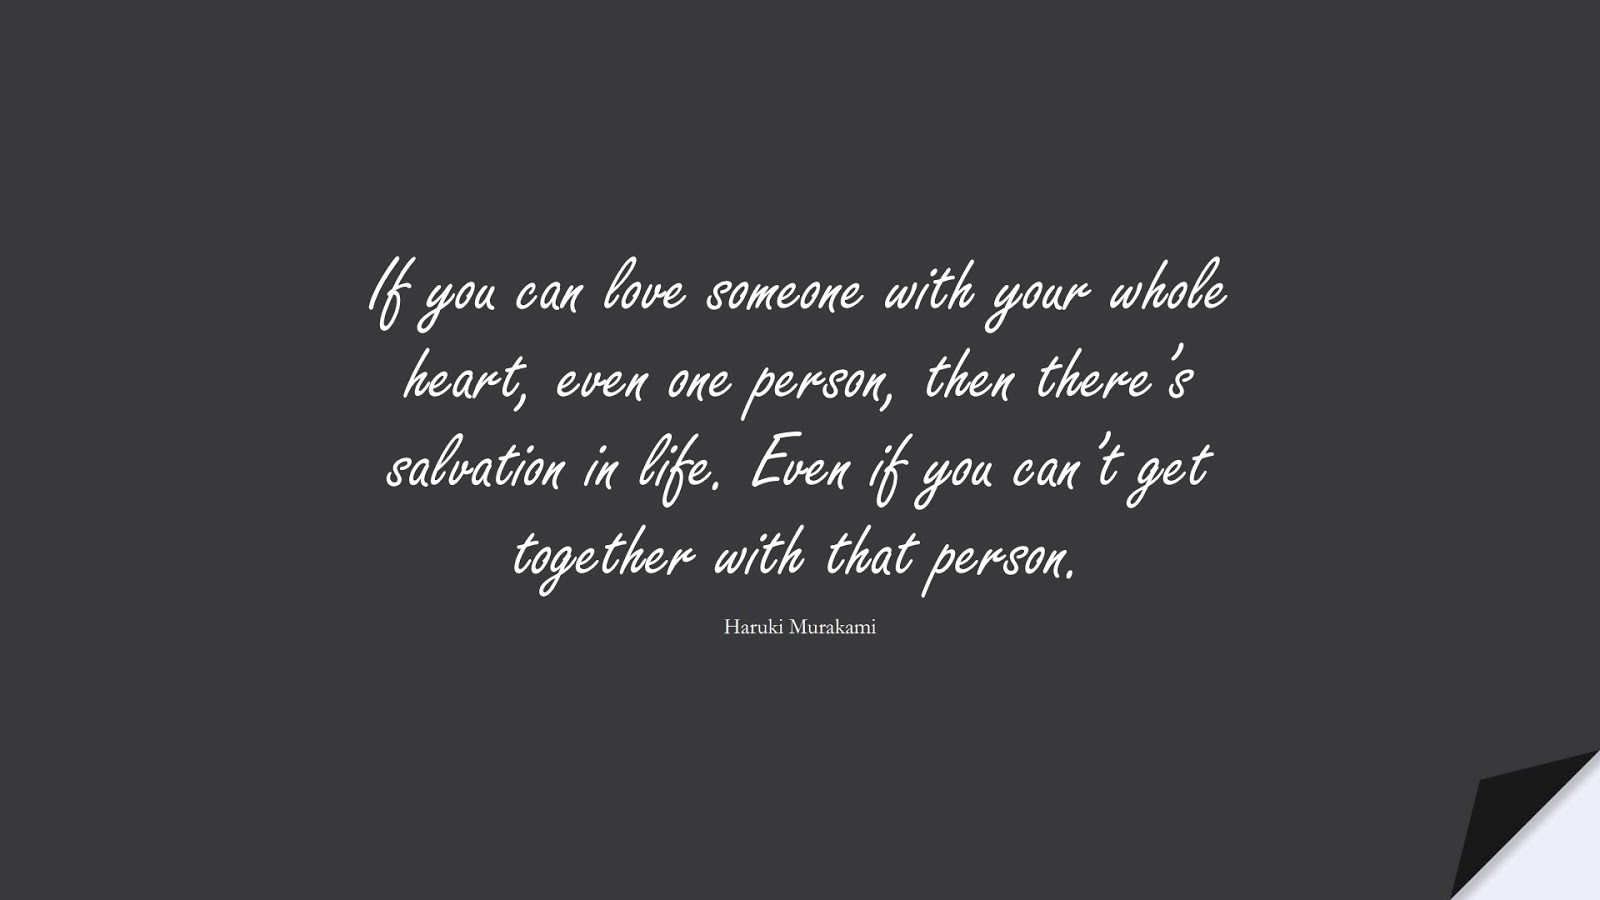 If you can love someone with your whole heart, even one person, then there's salvation in life. Even if you can't get together with that person. (Haruki Murakami);  #HopeQuotes